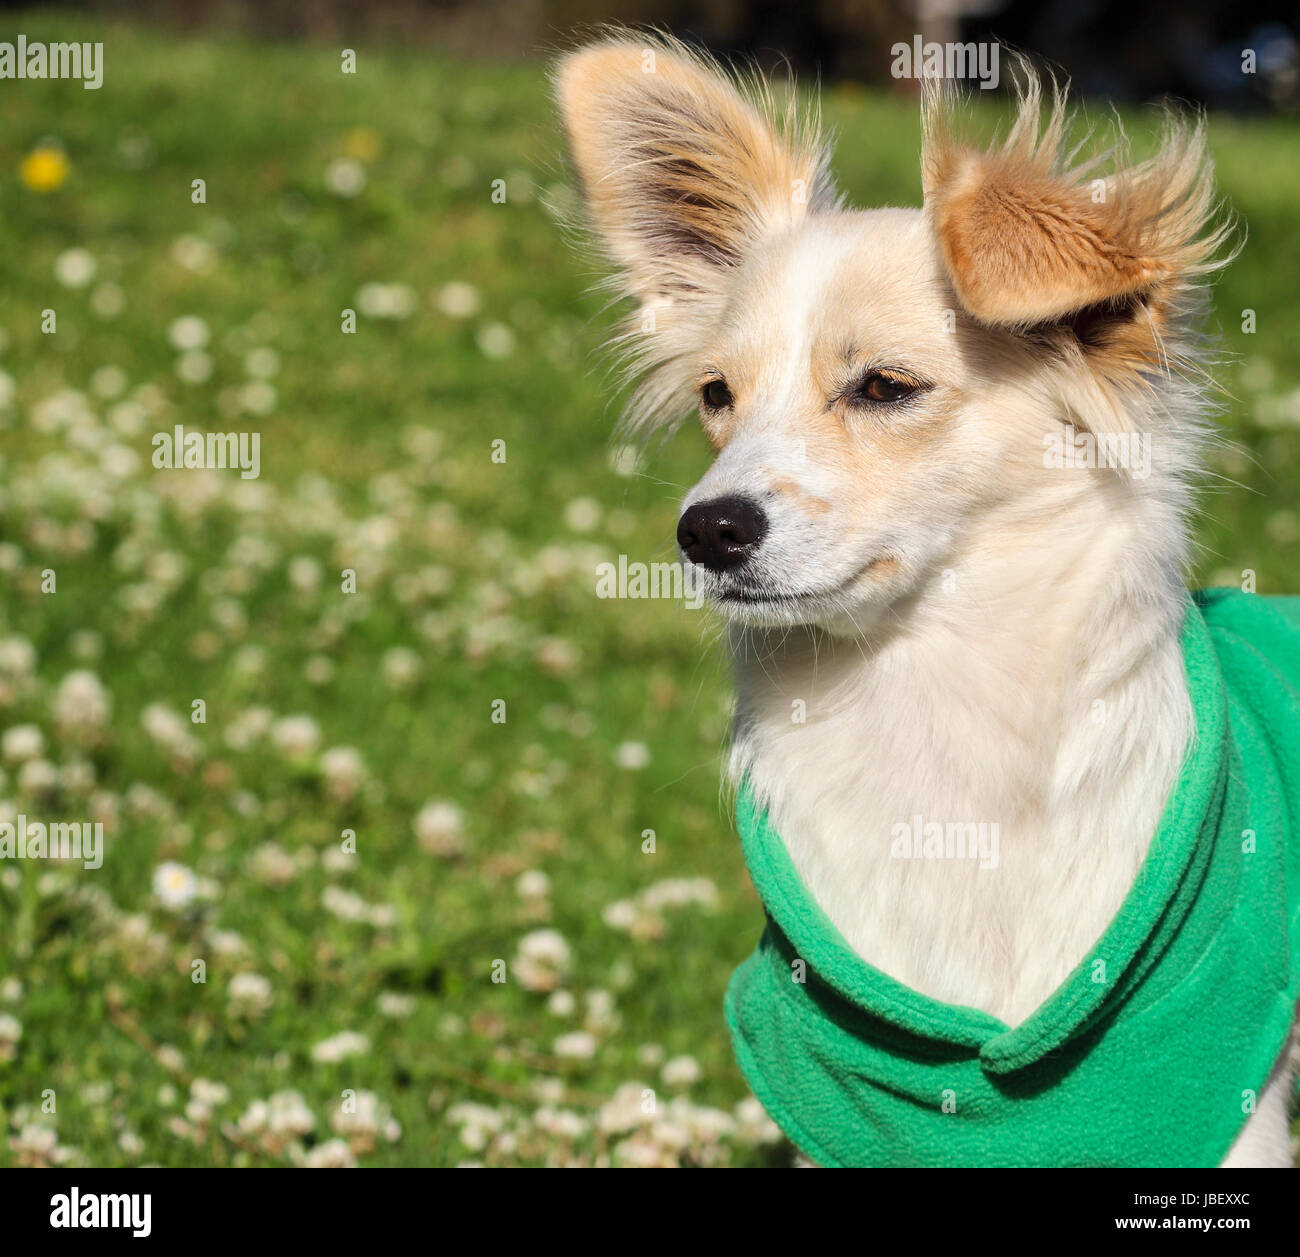 Puppy wearing vest - Stock Image